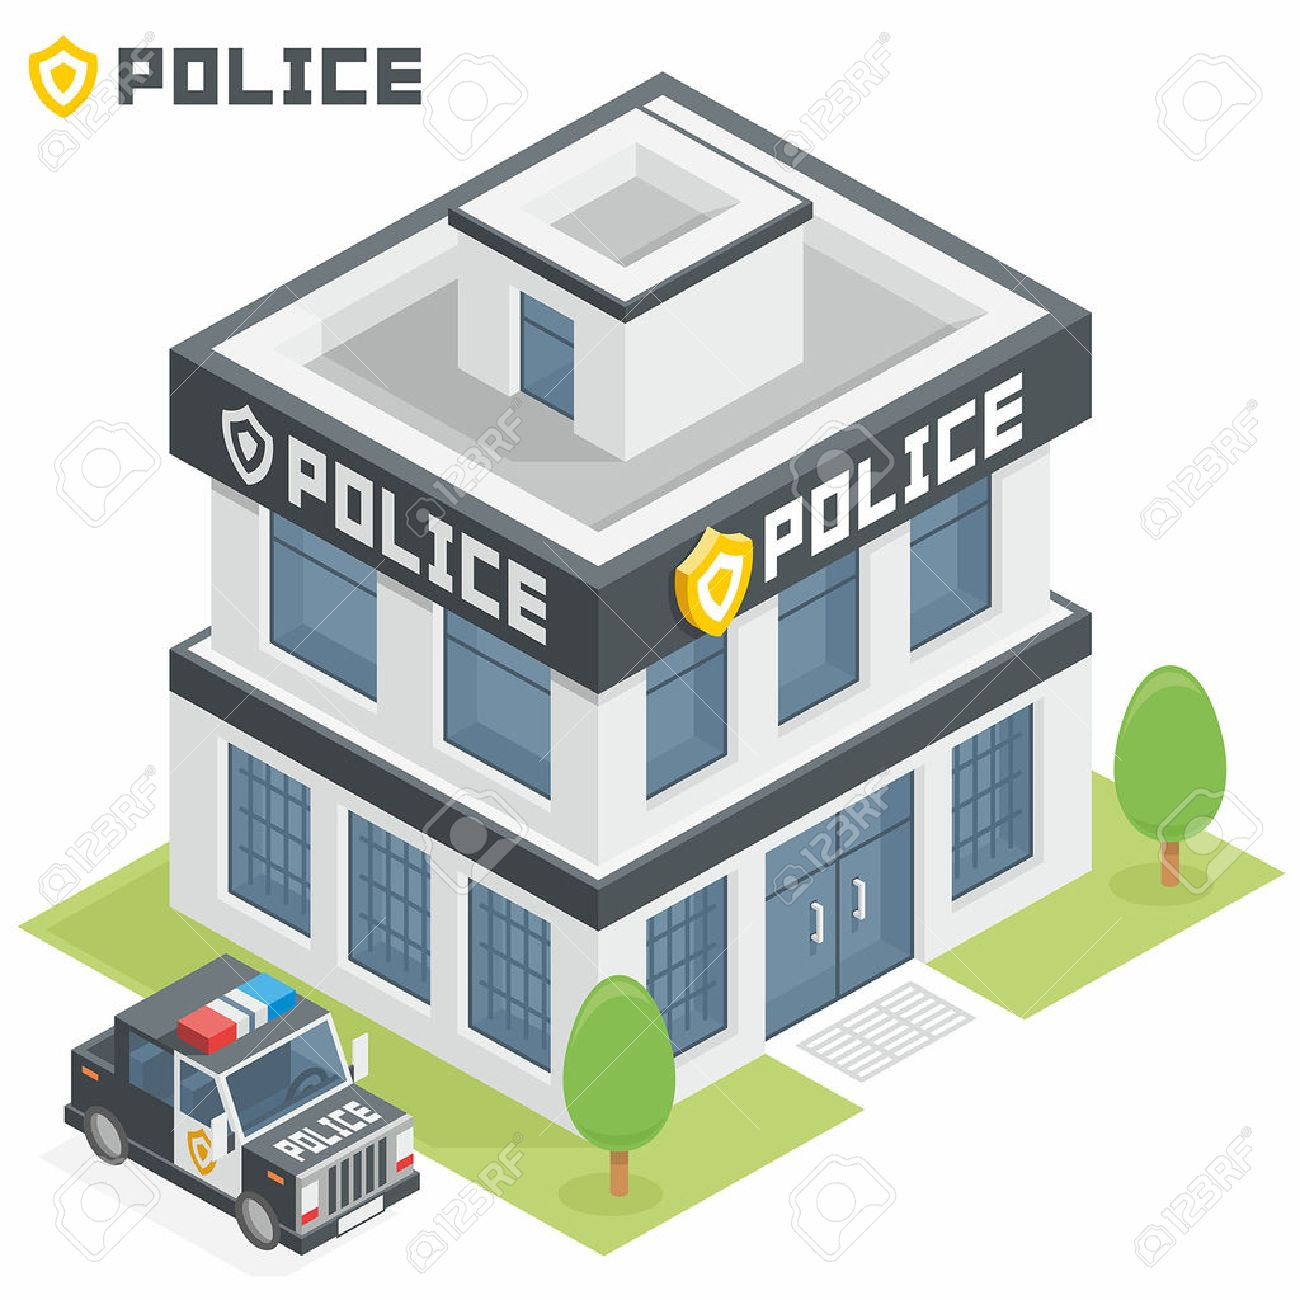 police department building royalty free cliparts, vectors, and stock